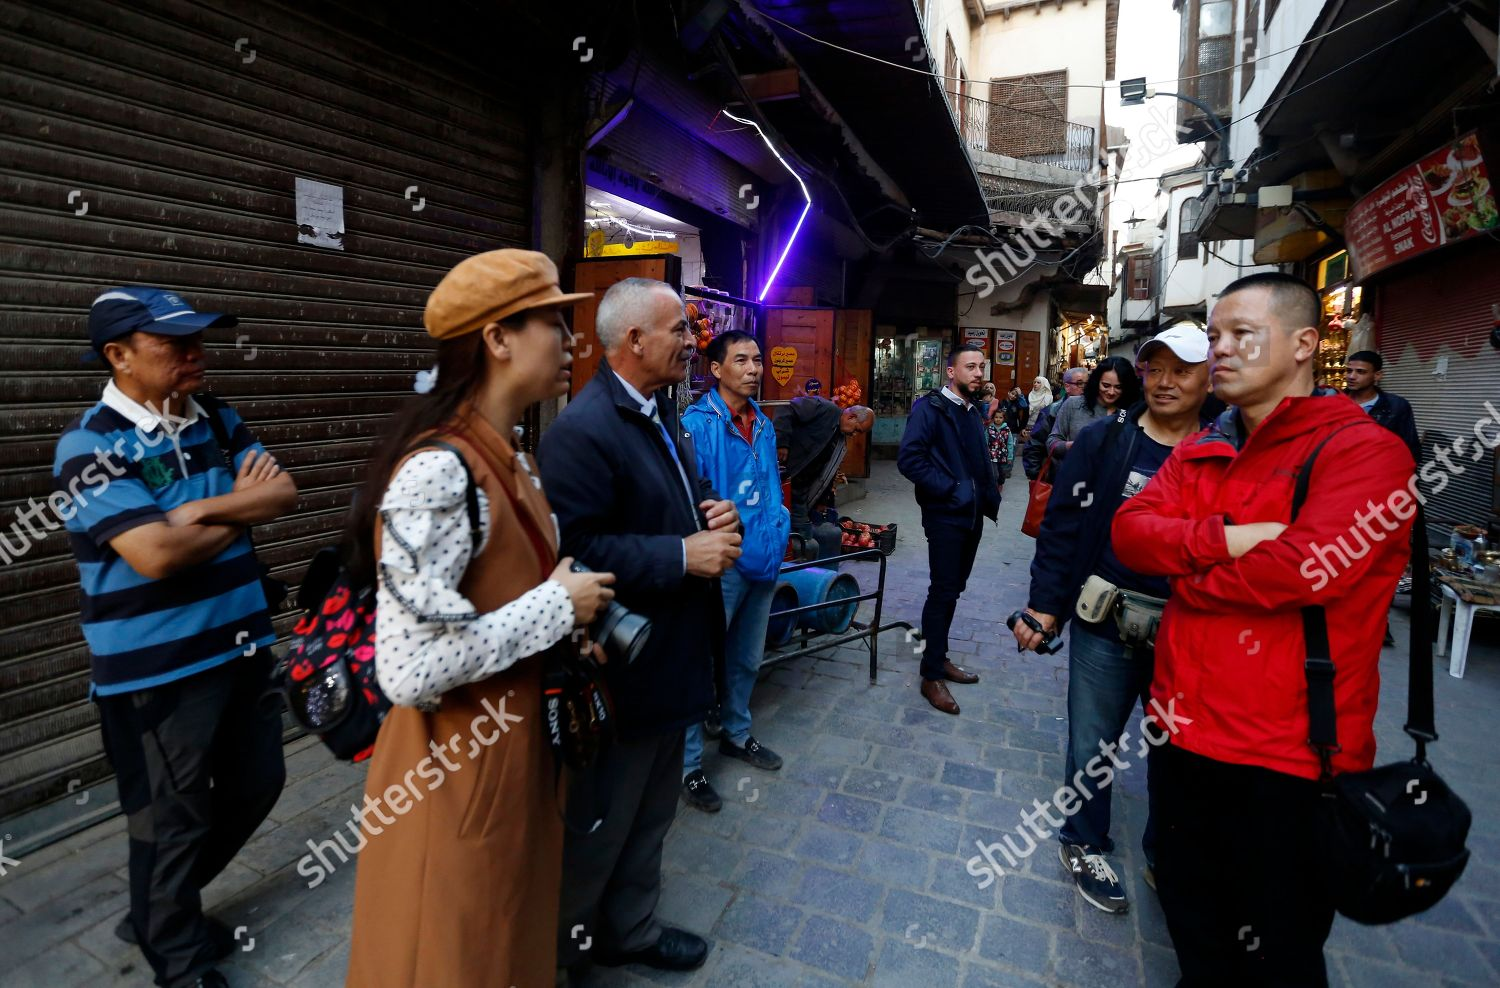 Tour Guide Speaks Some 13 Chinese Tourists Stock Photo 9970183g